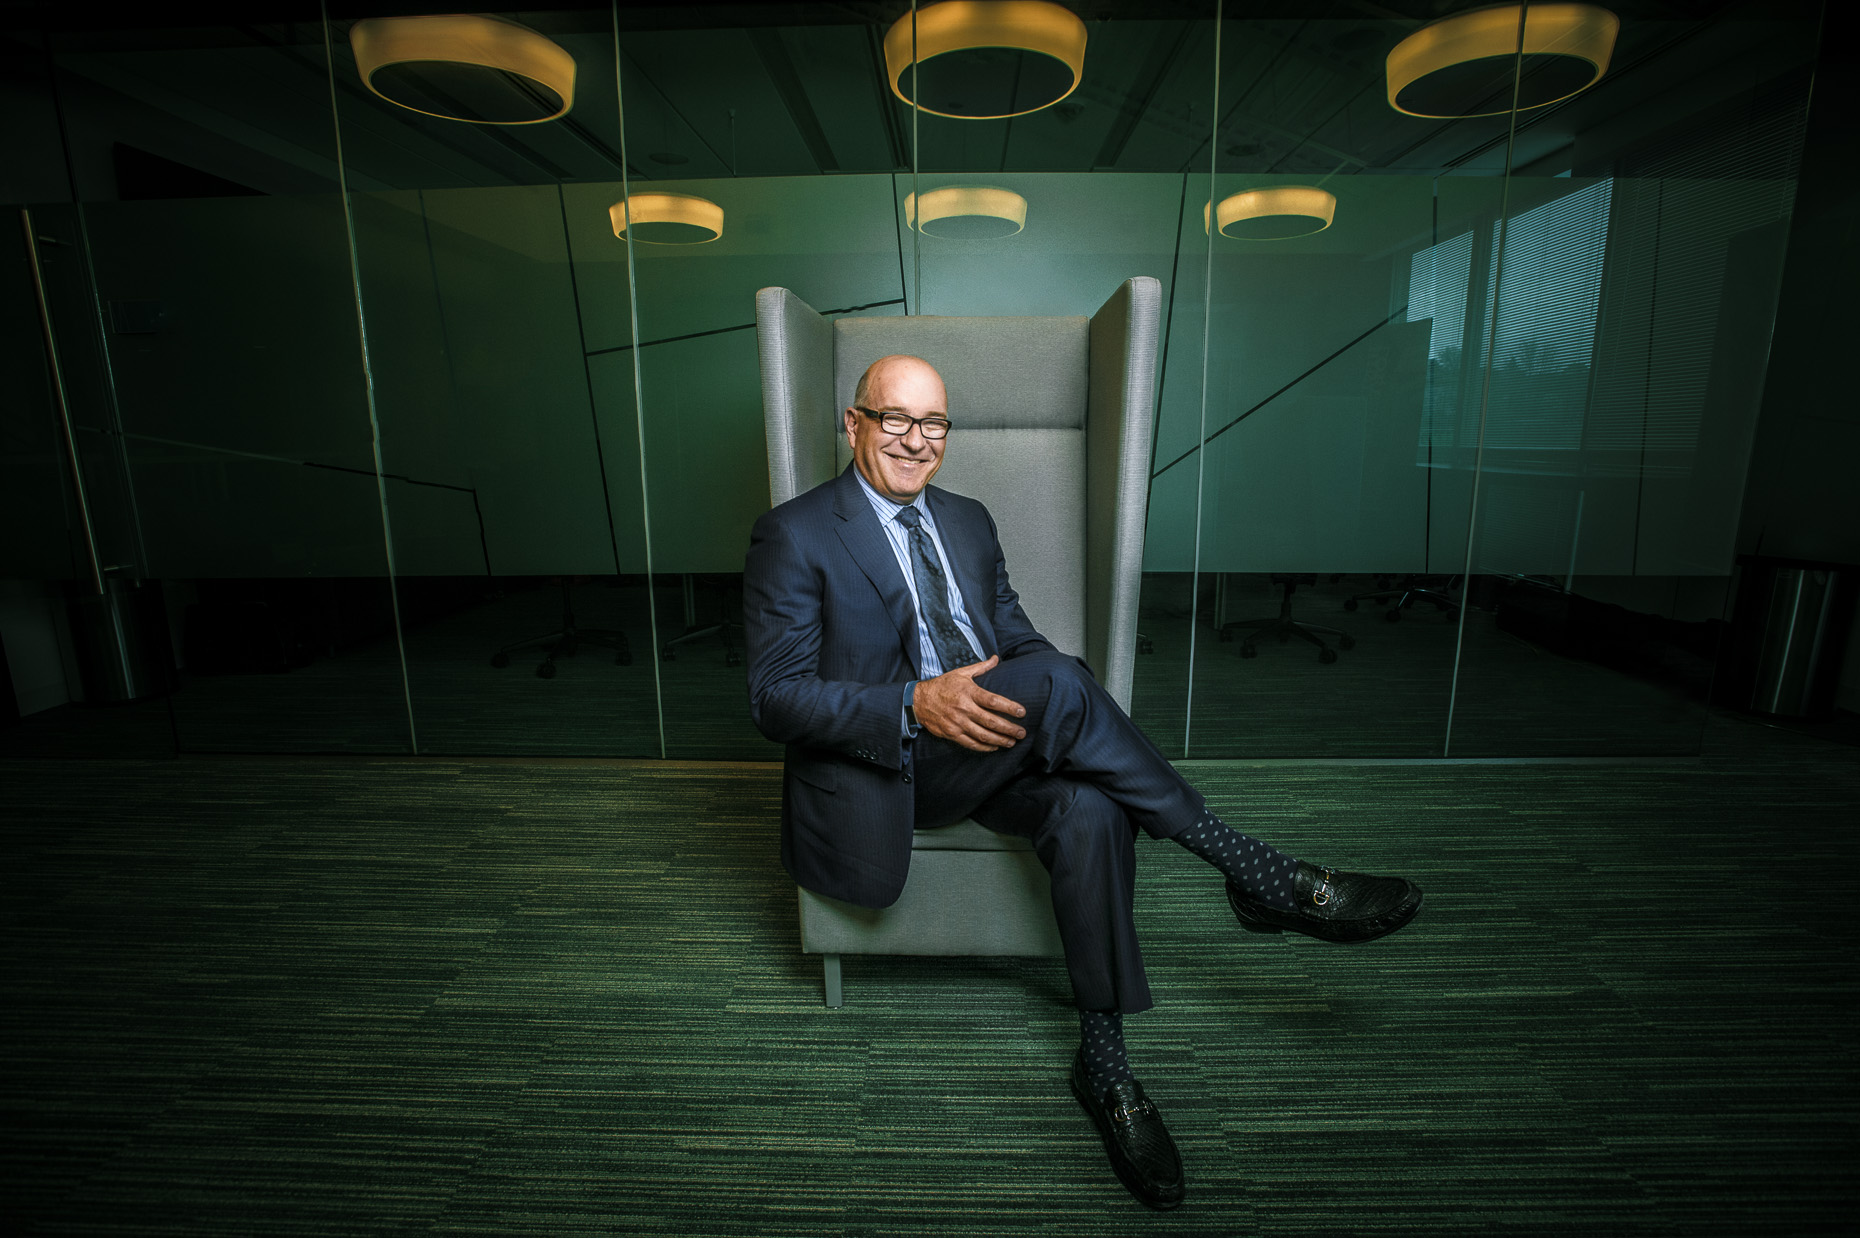 editorial-corporate-portraits-ceo-man